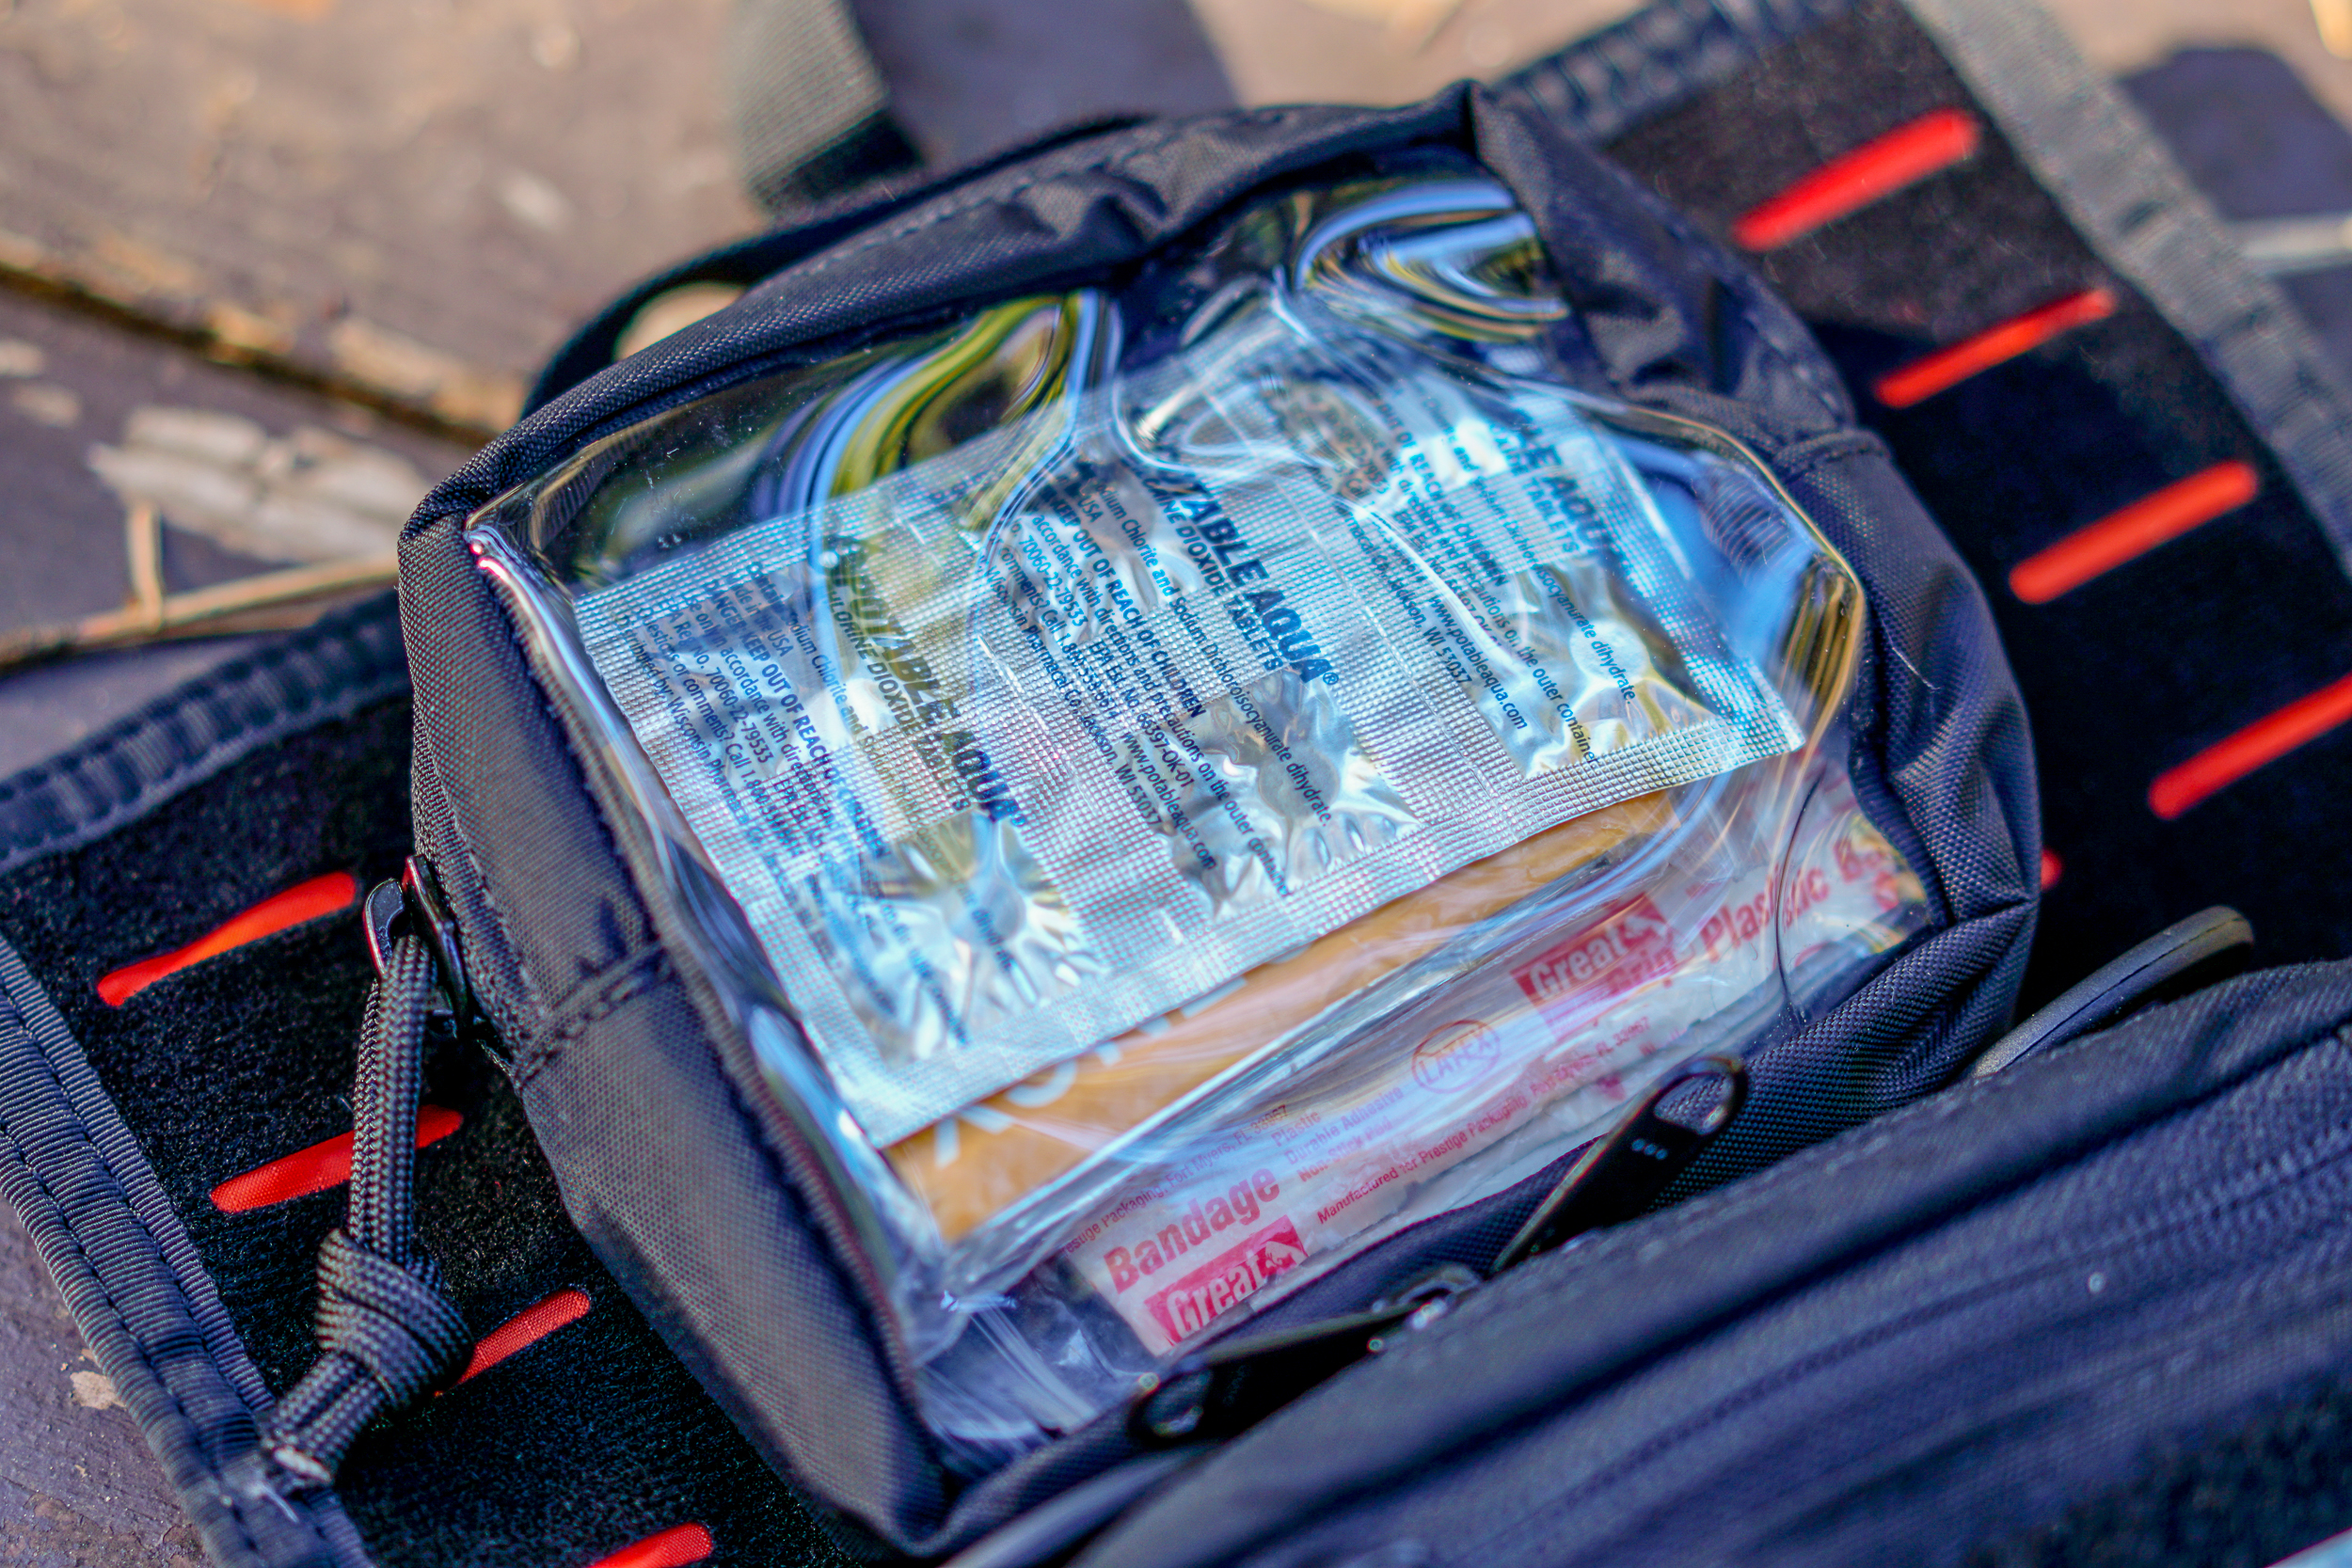 S.O Tech Go Pouch 2 Quick Look first aid kit mounted via hook and loop